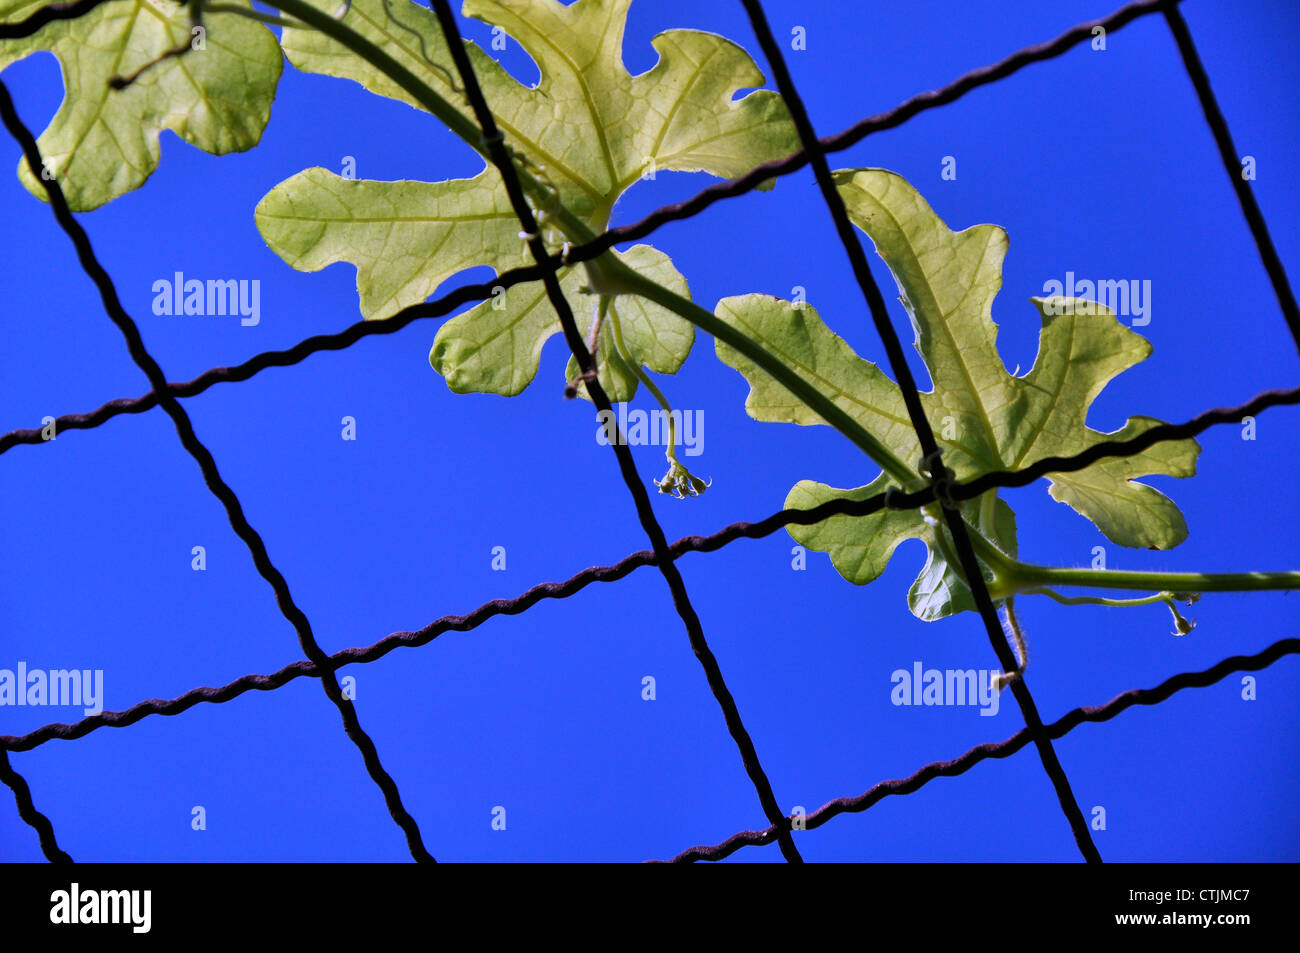 Ivy leaves with blue sky - Stock Image